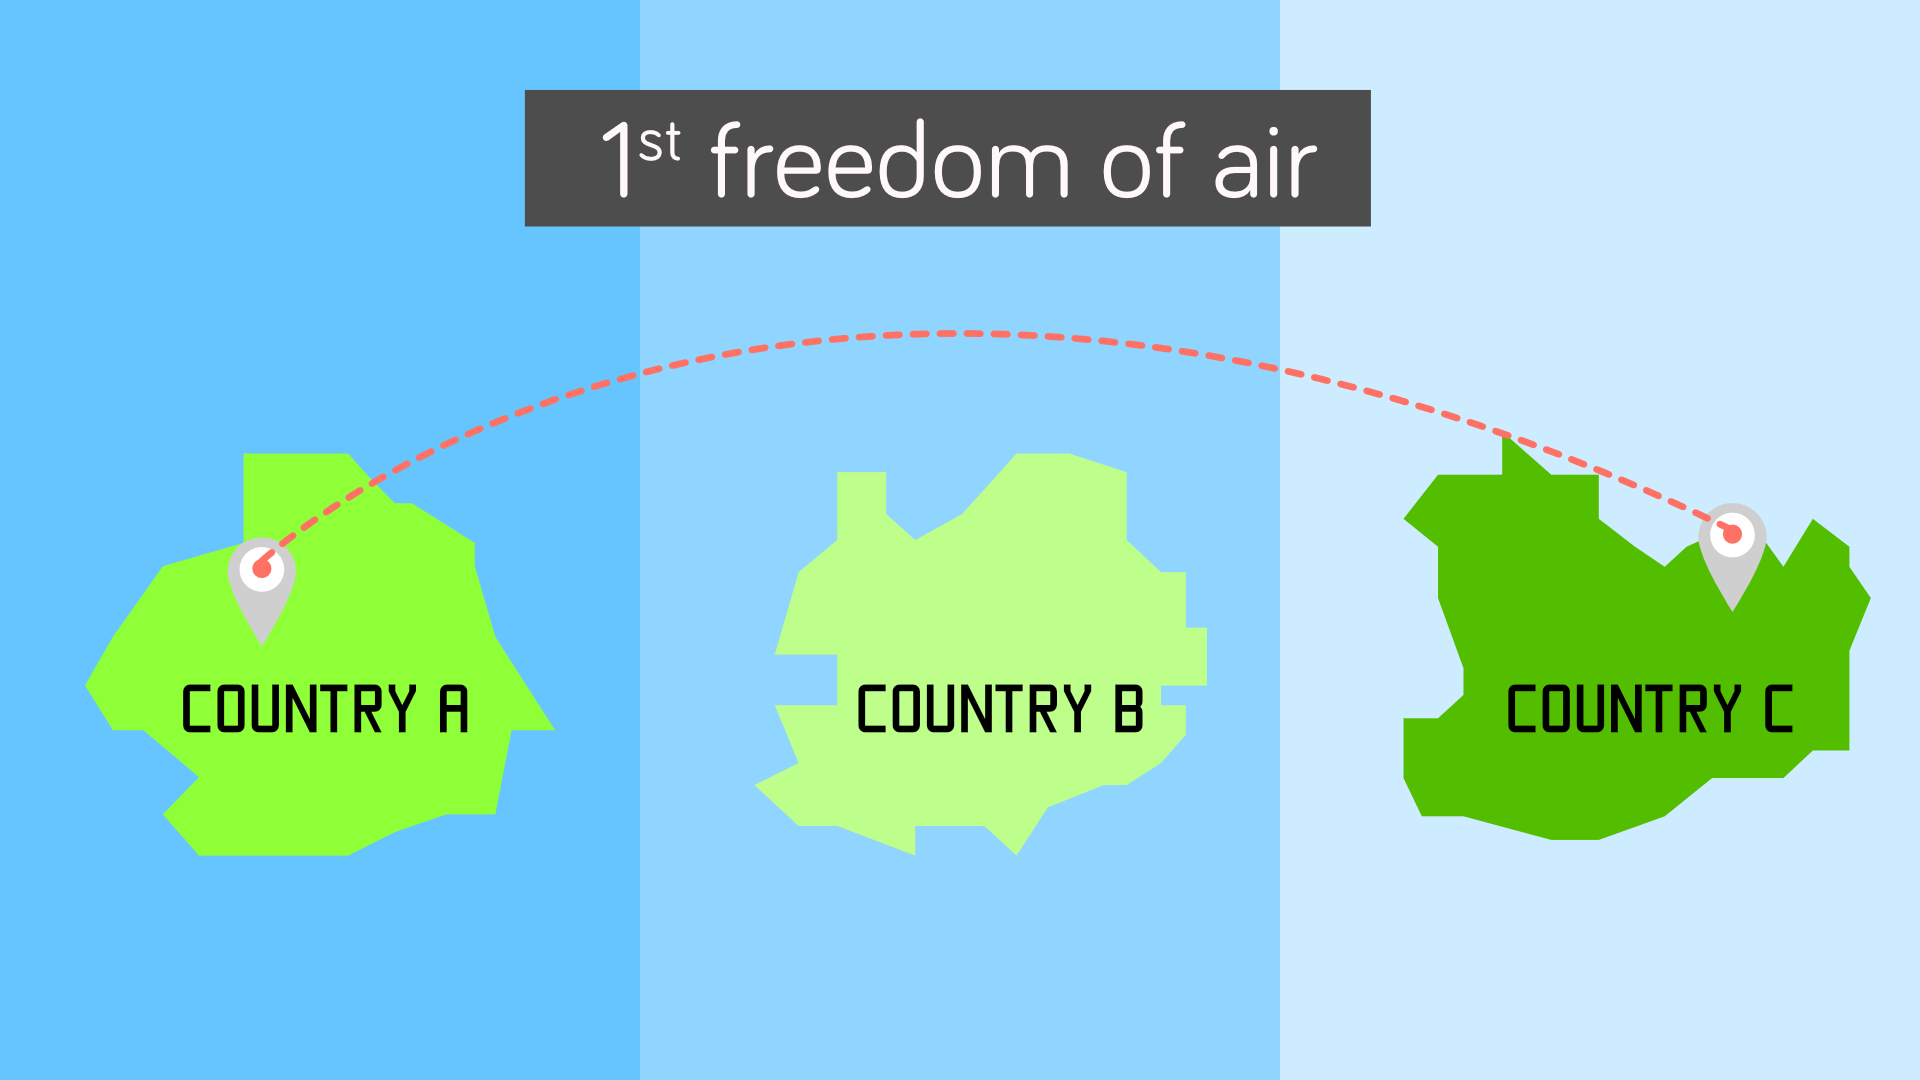 First freedom: airline can fly over one's territory